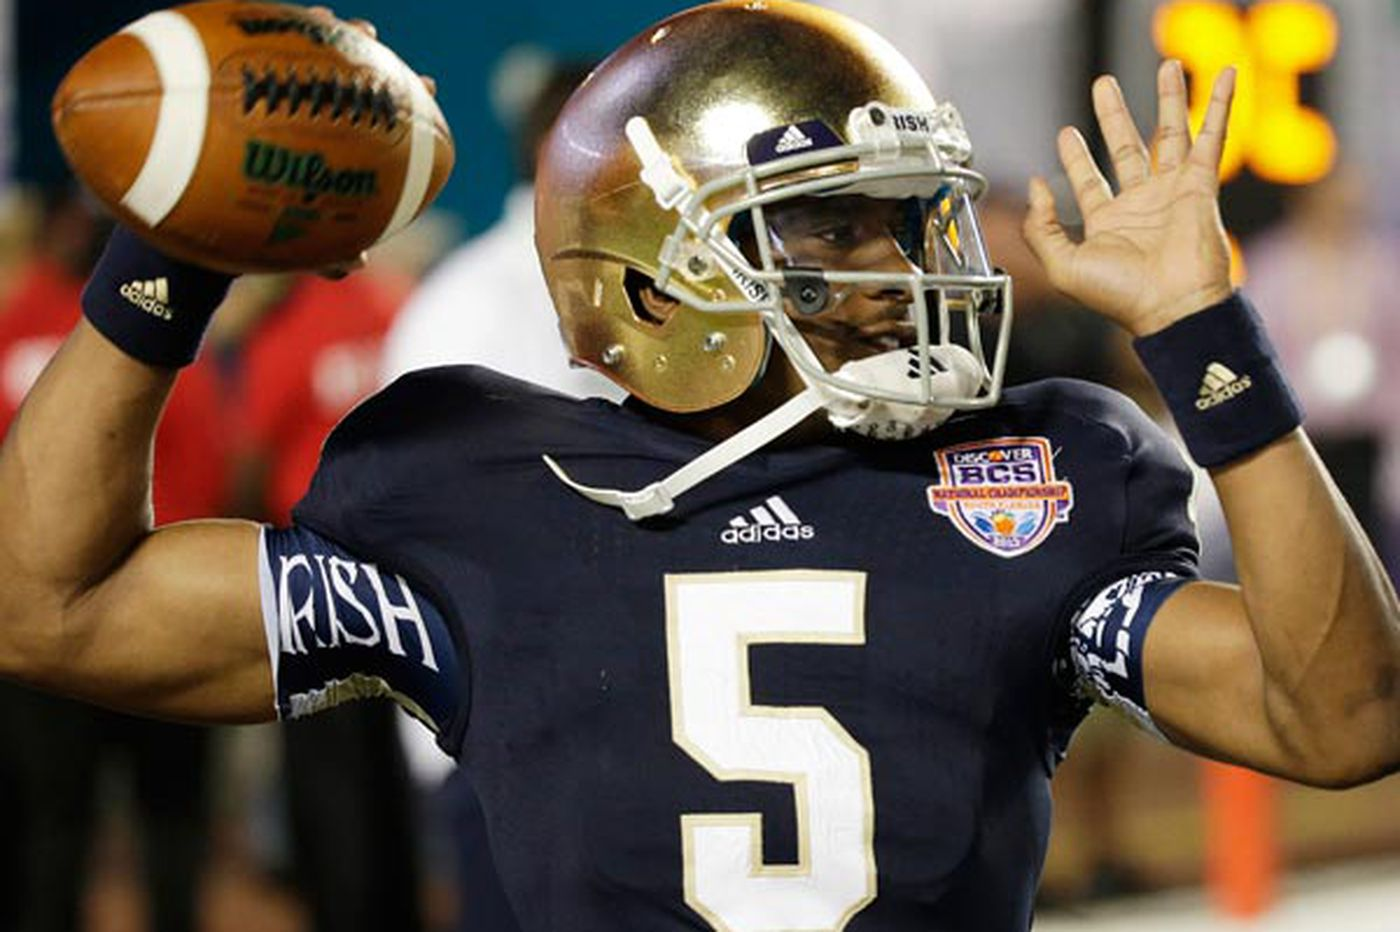 Sports in Brief: Notre Dame bans starting QB Golson